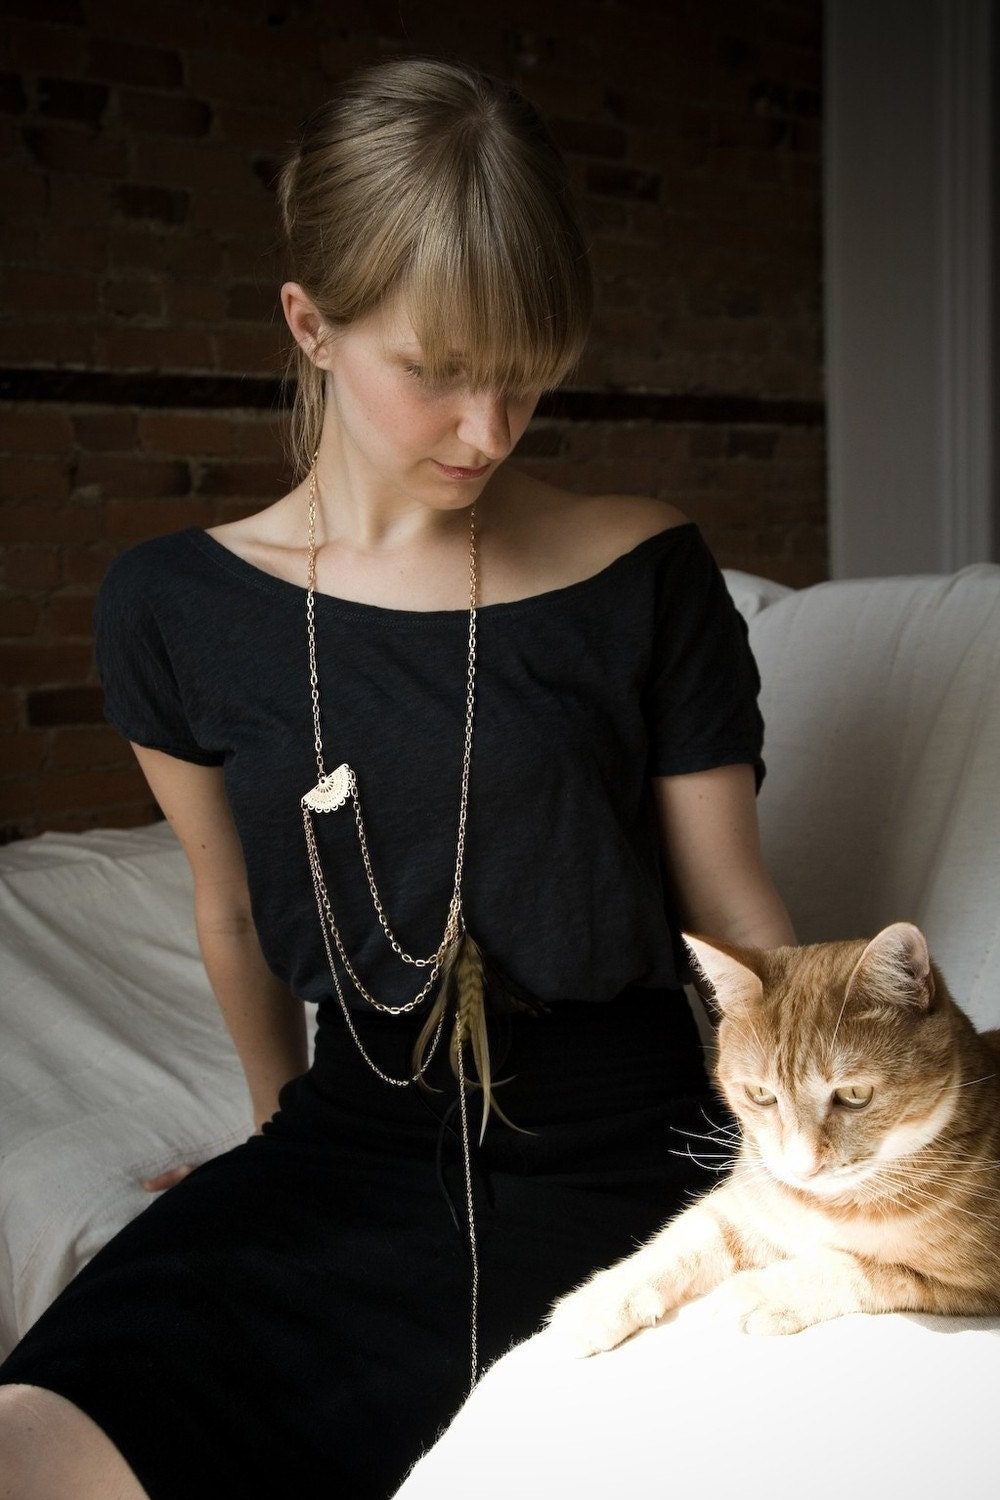 Feather necklace - Gold Neutral Feather Necklace - Neutral Feathers - Dylan Statement Necklace - noemiah